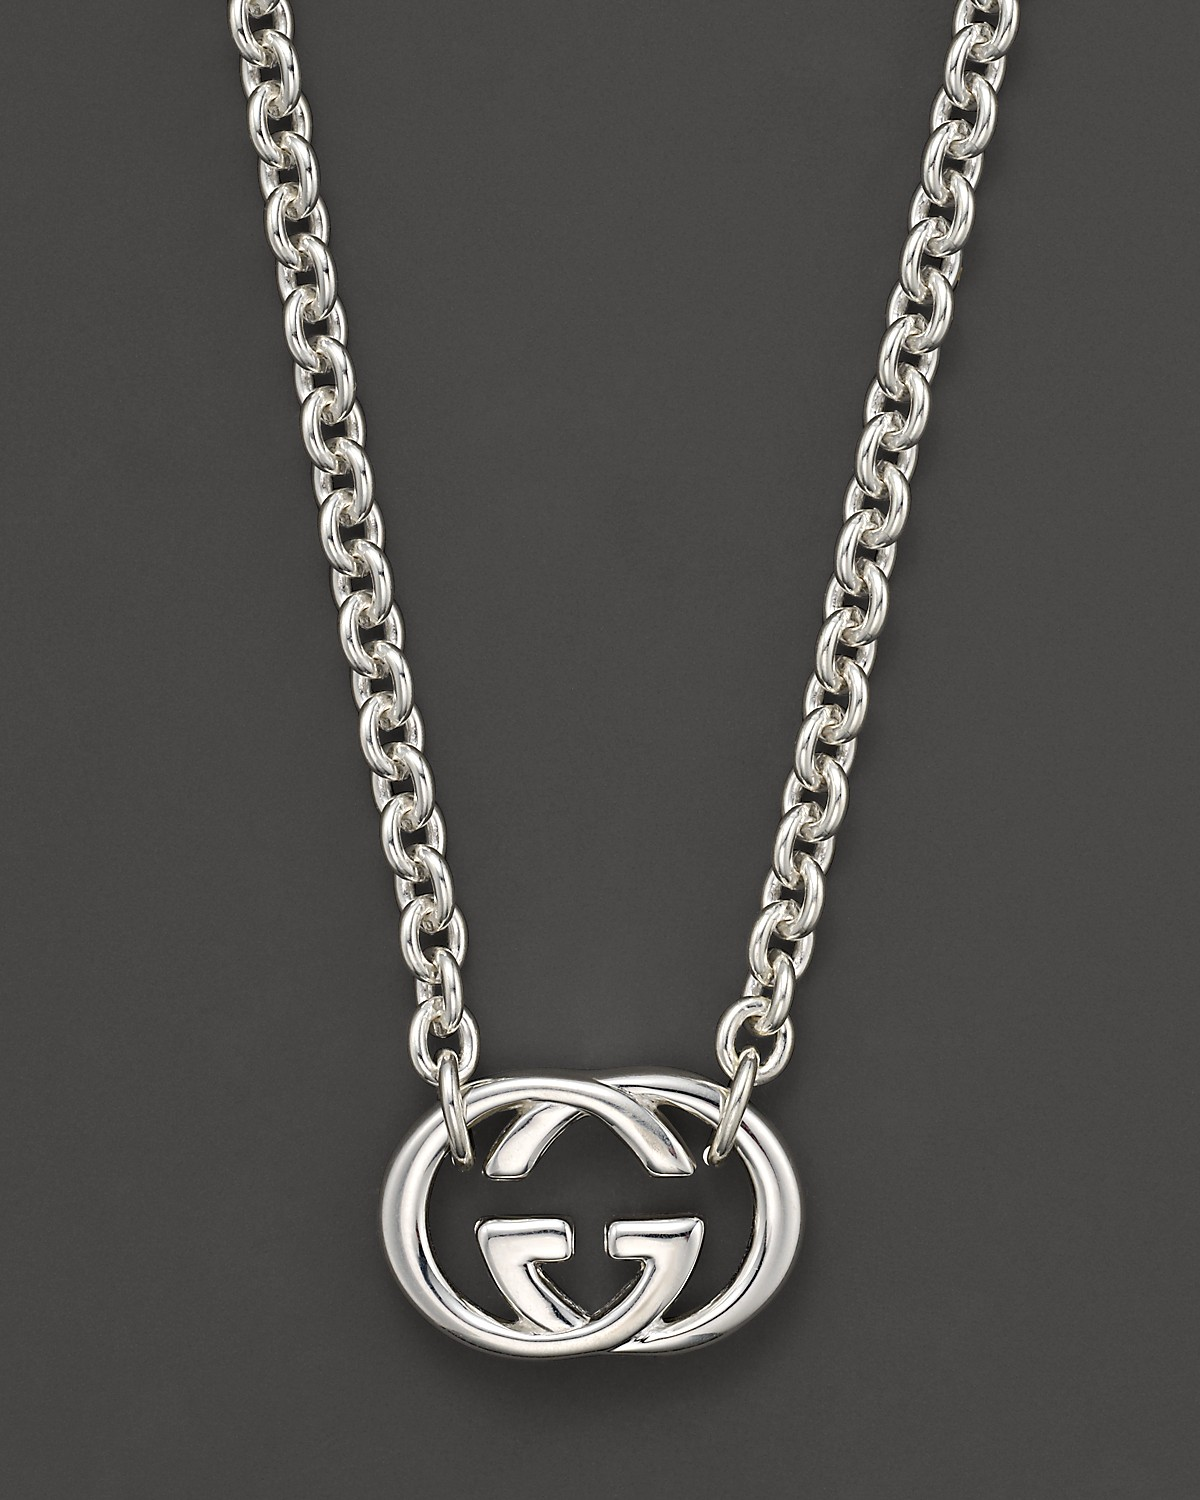 Gucci Latest Men Fashion Accessories Collection - Best Articles for Gents - Necklace (2)